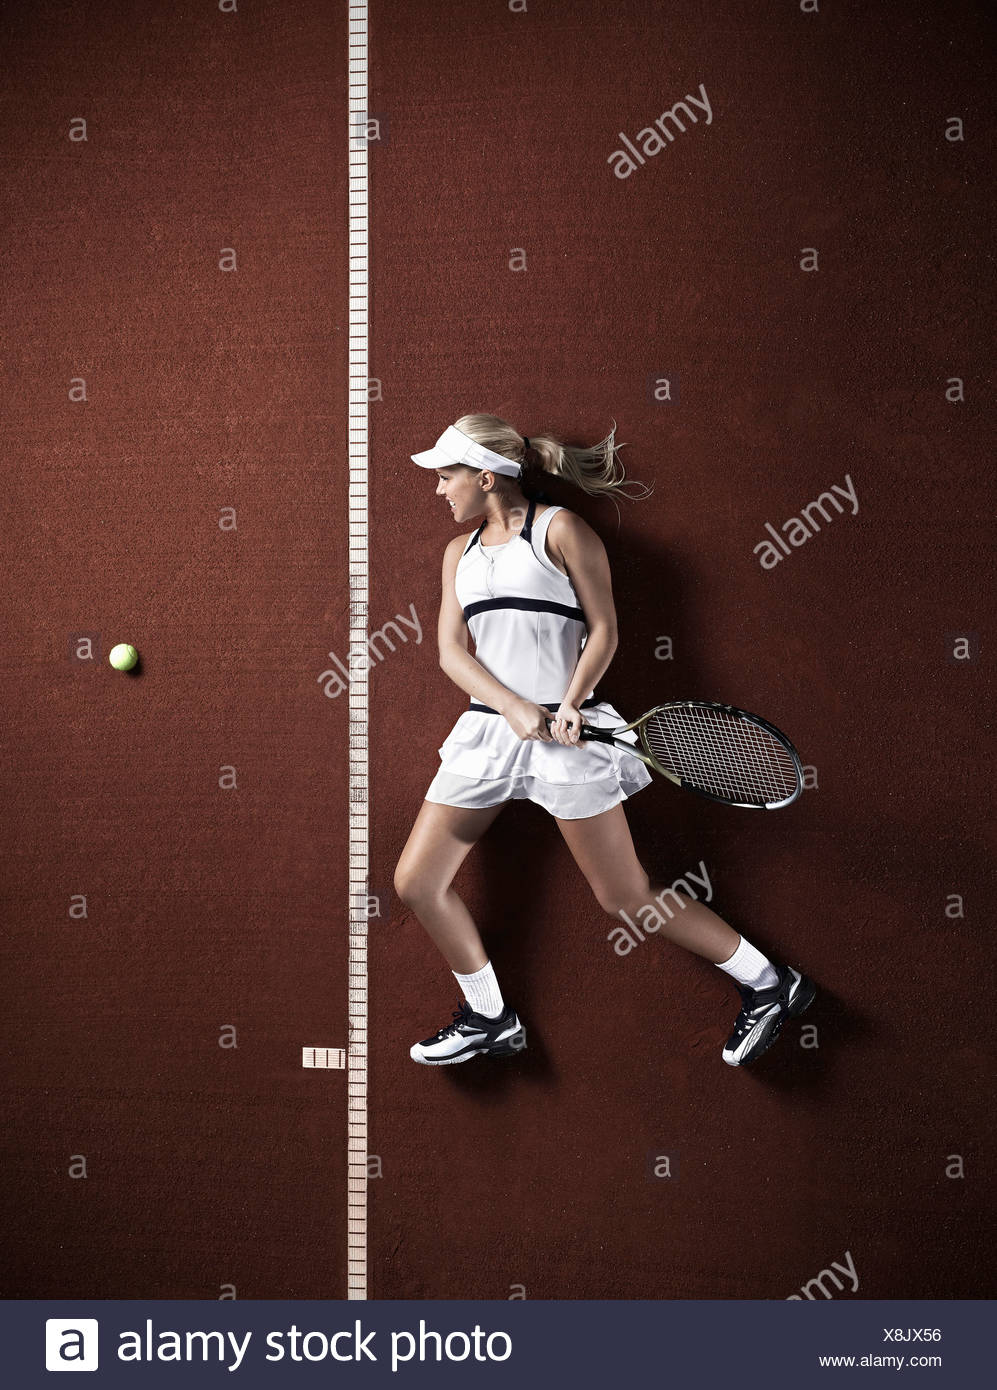 Tennis player laying on court - Stock Image